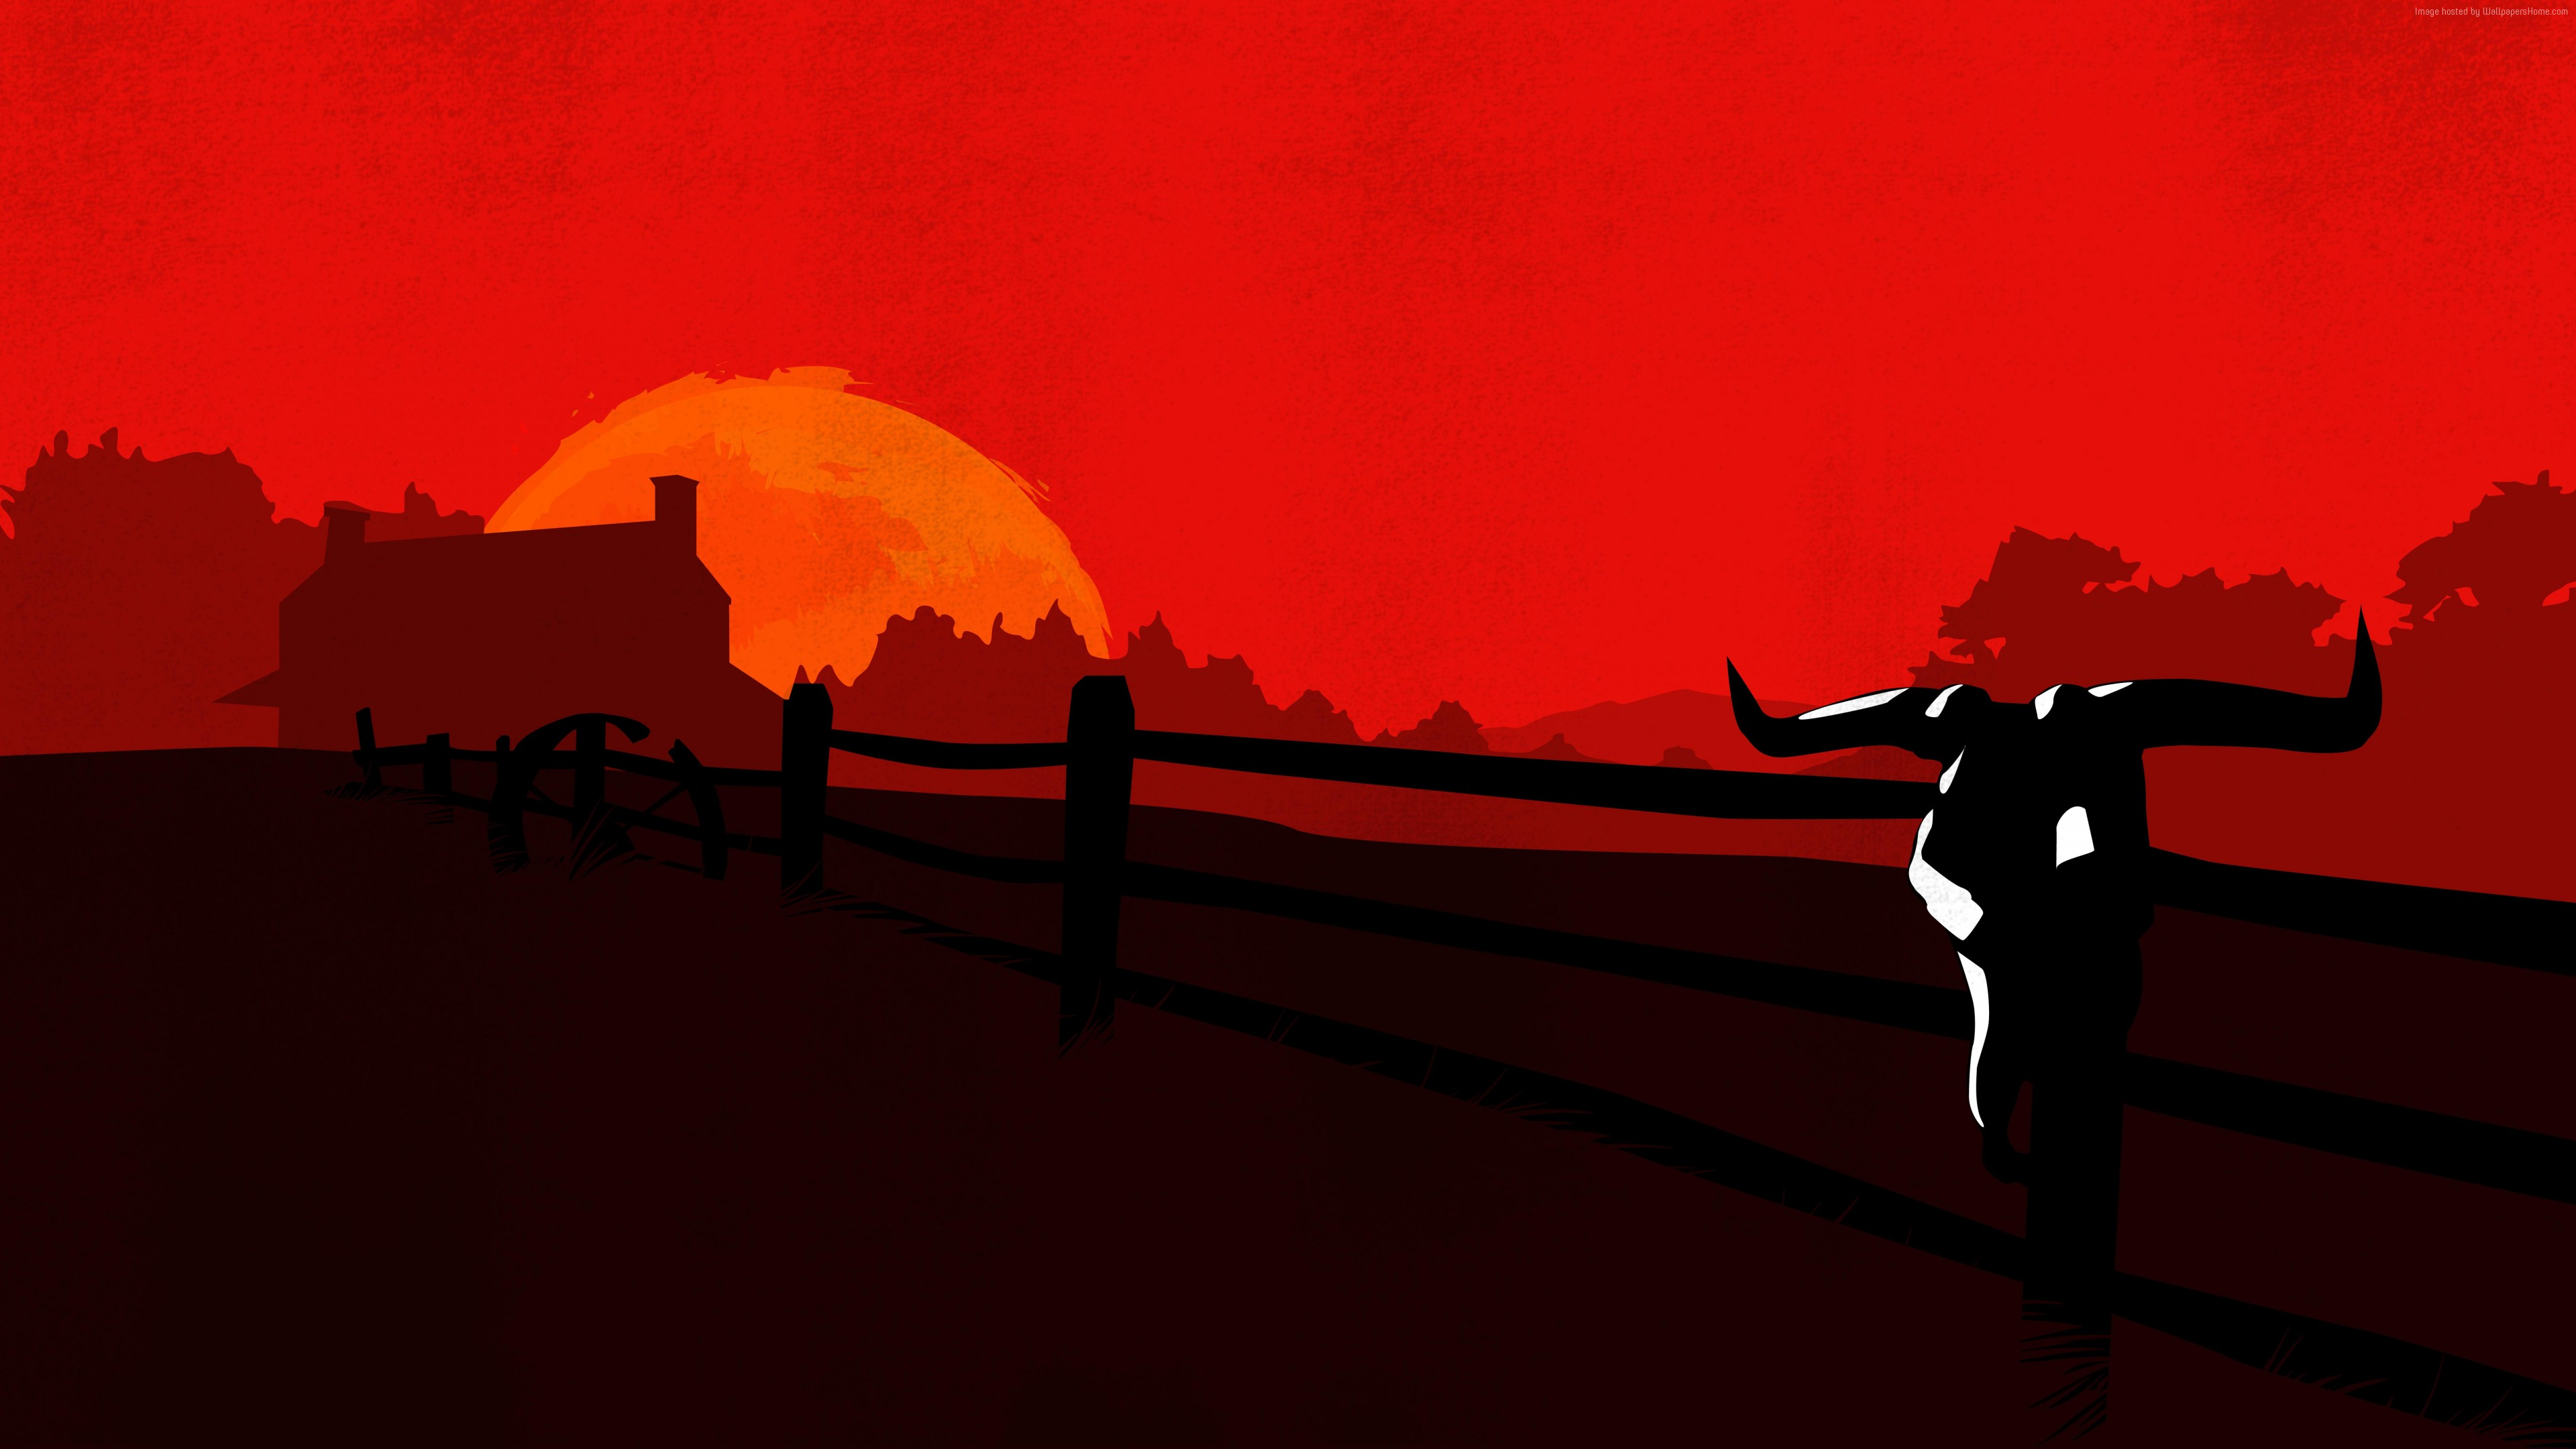 Red Dead Redemption 2 Wallpaper Hd Posted By Christopher Johnson